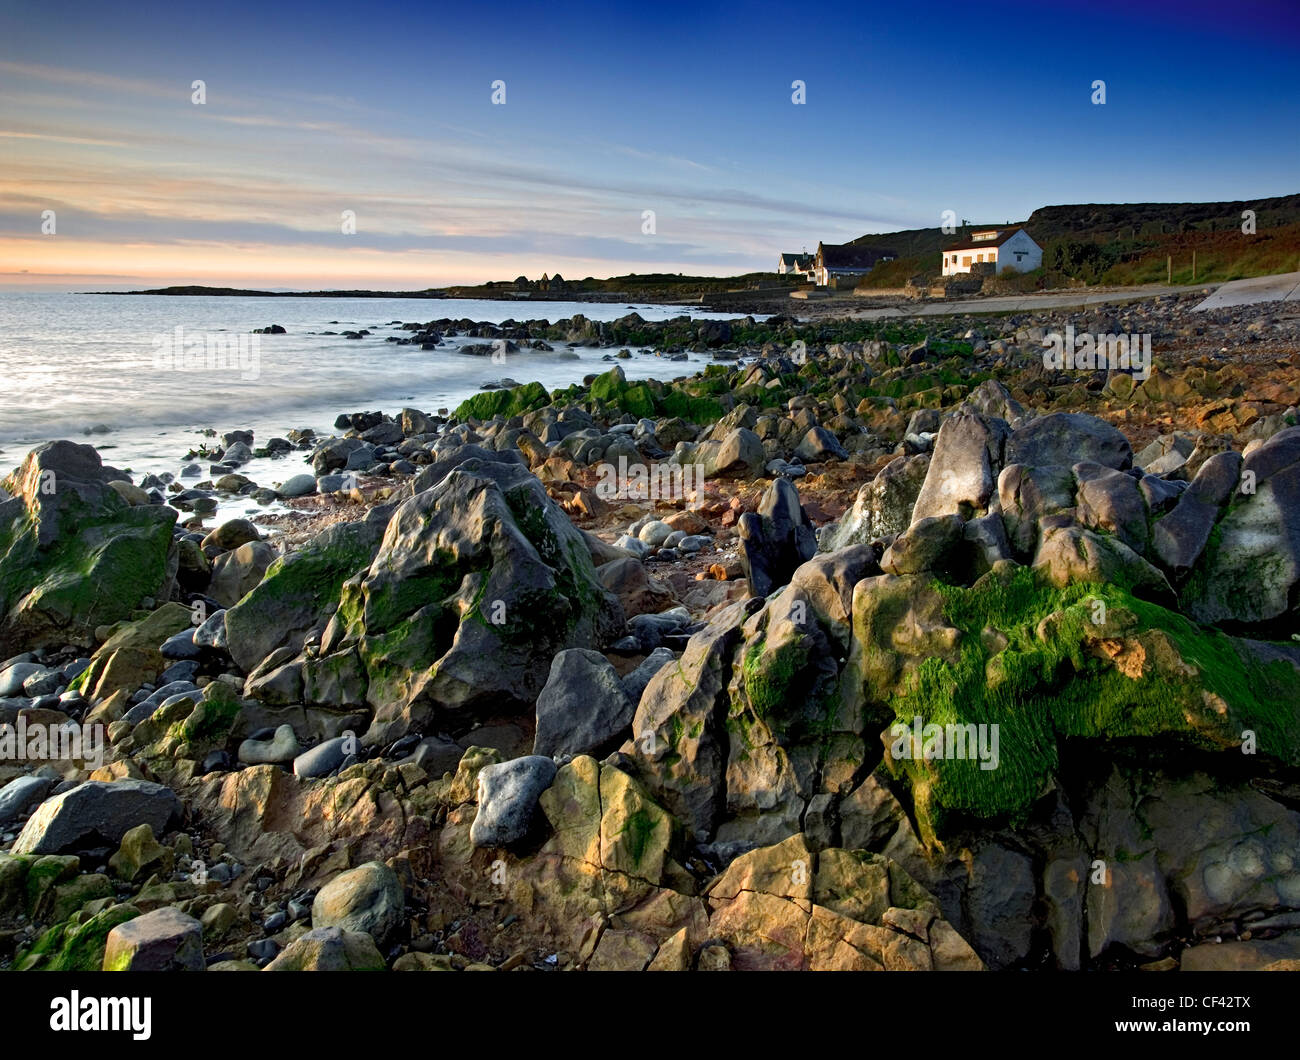 Dawn breaks over the rugged coast at Port Eynon on the Gower Peninsula. - Stock Image